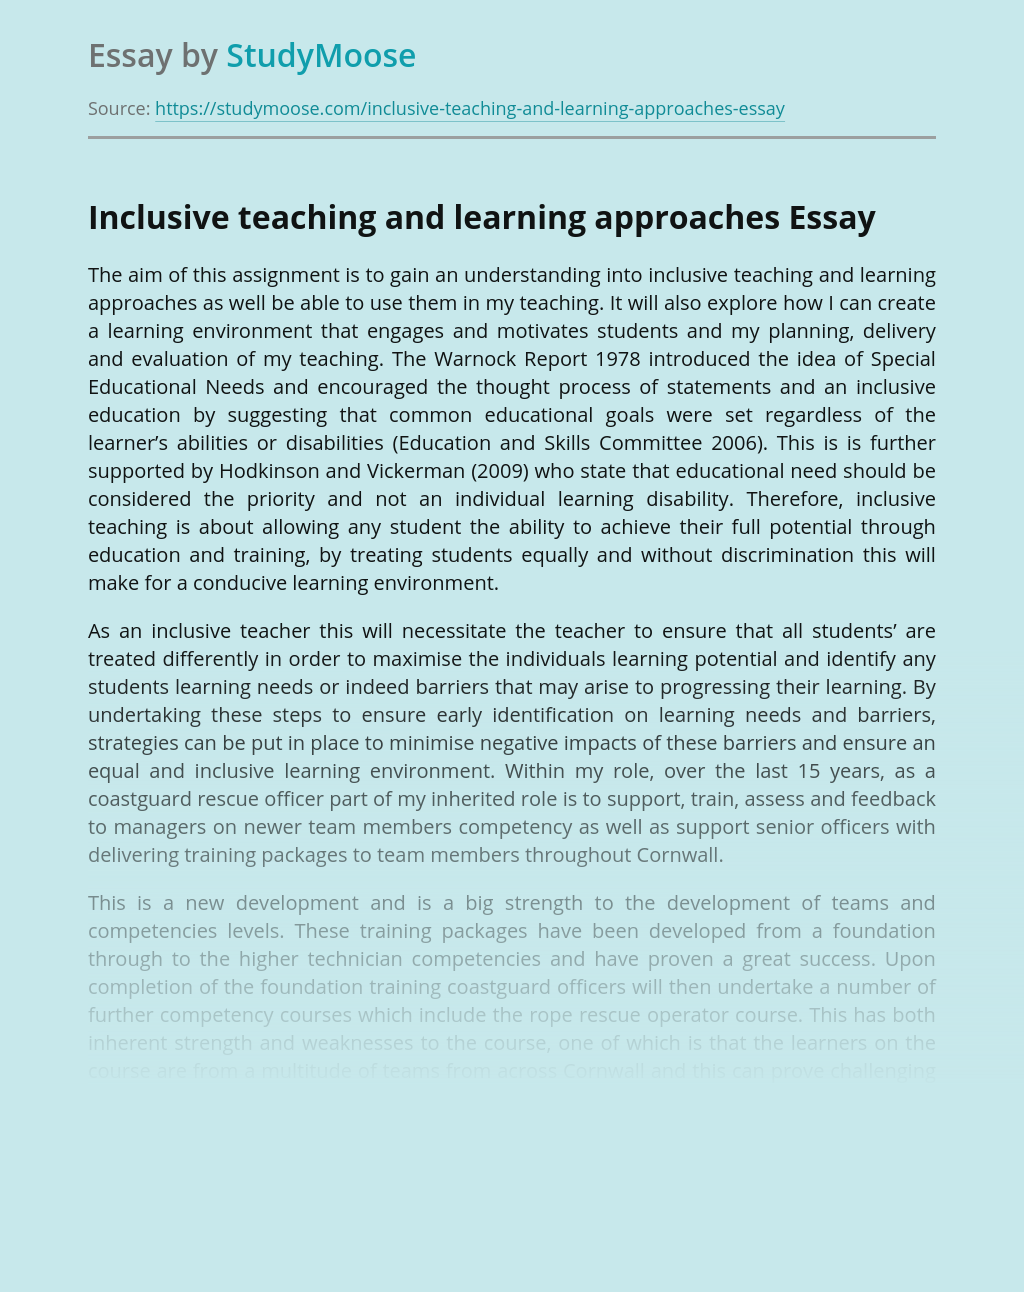 Inclusive teaching and learning approaches